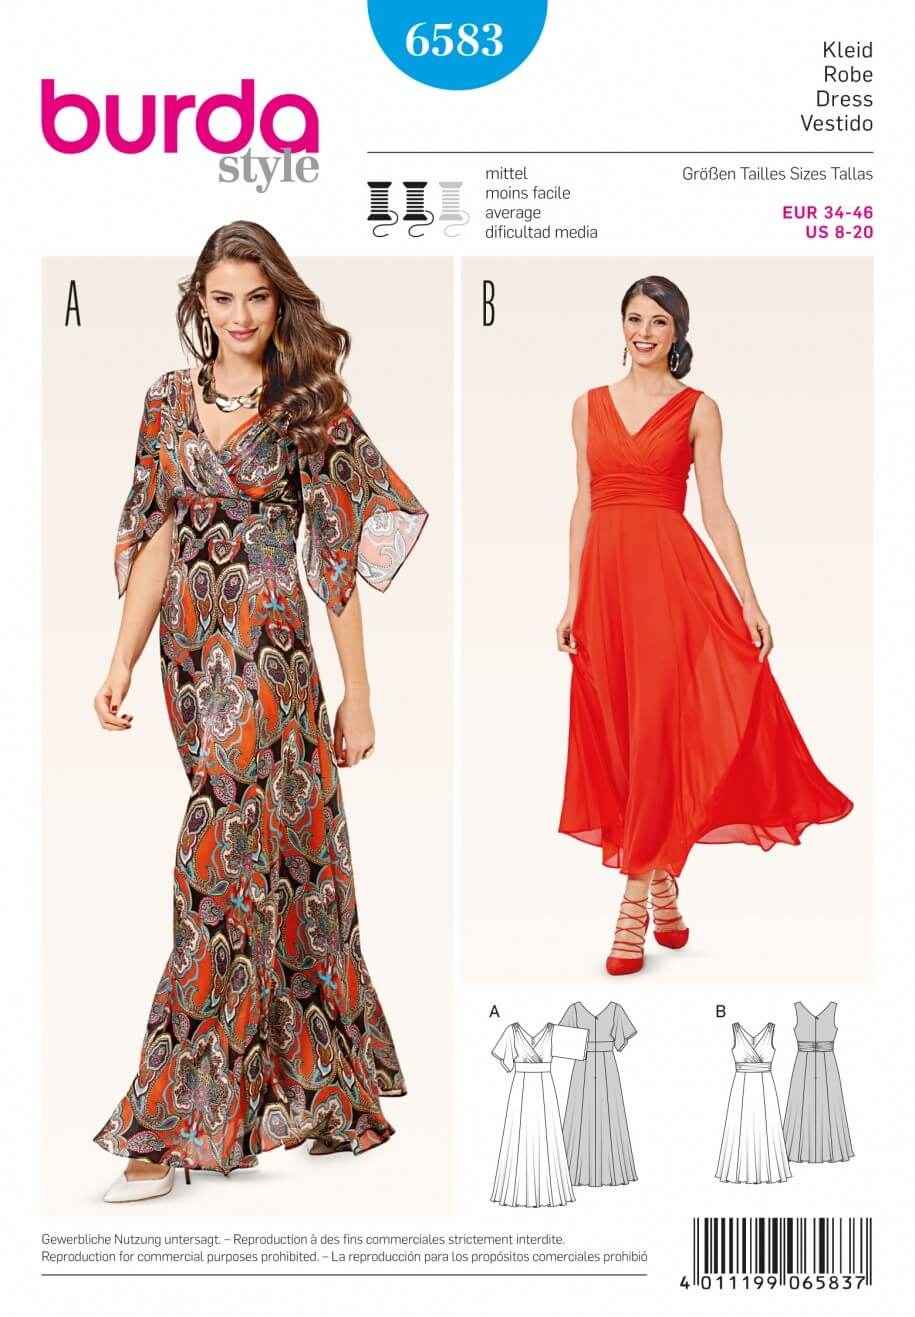 Burda Misses Summer Evening Maxi or Midi Dress Sewing Pattern 6583